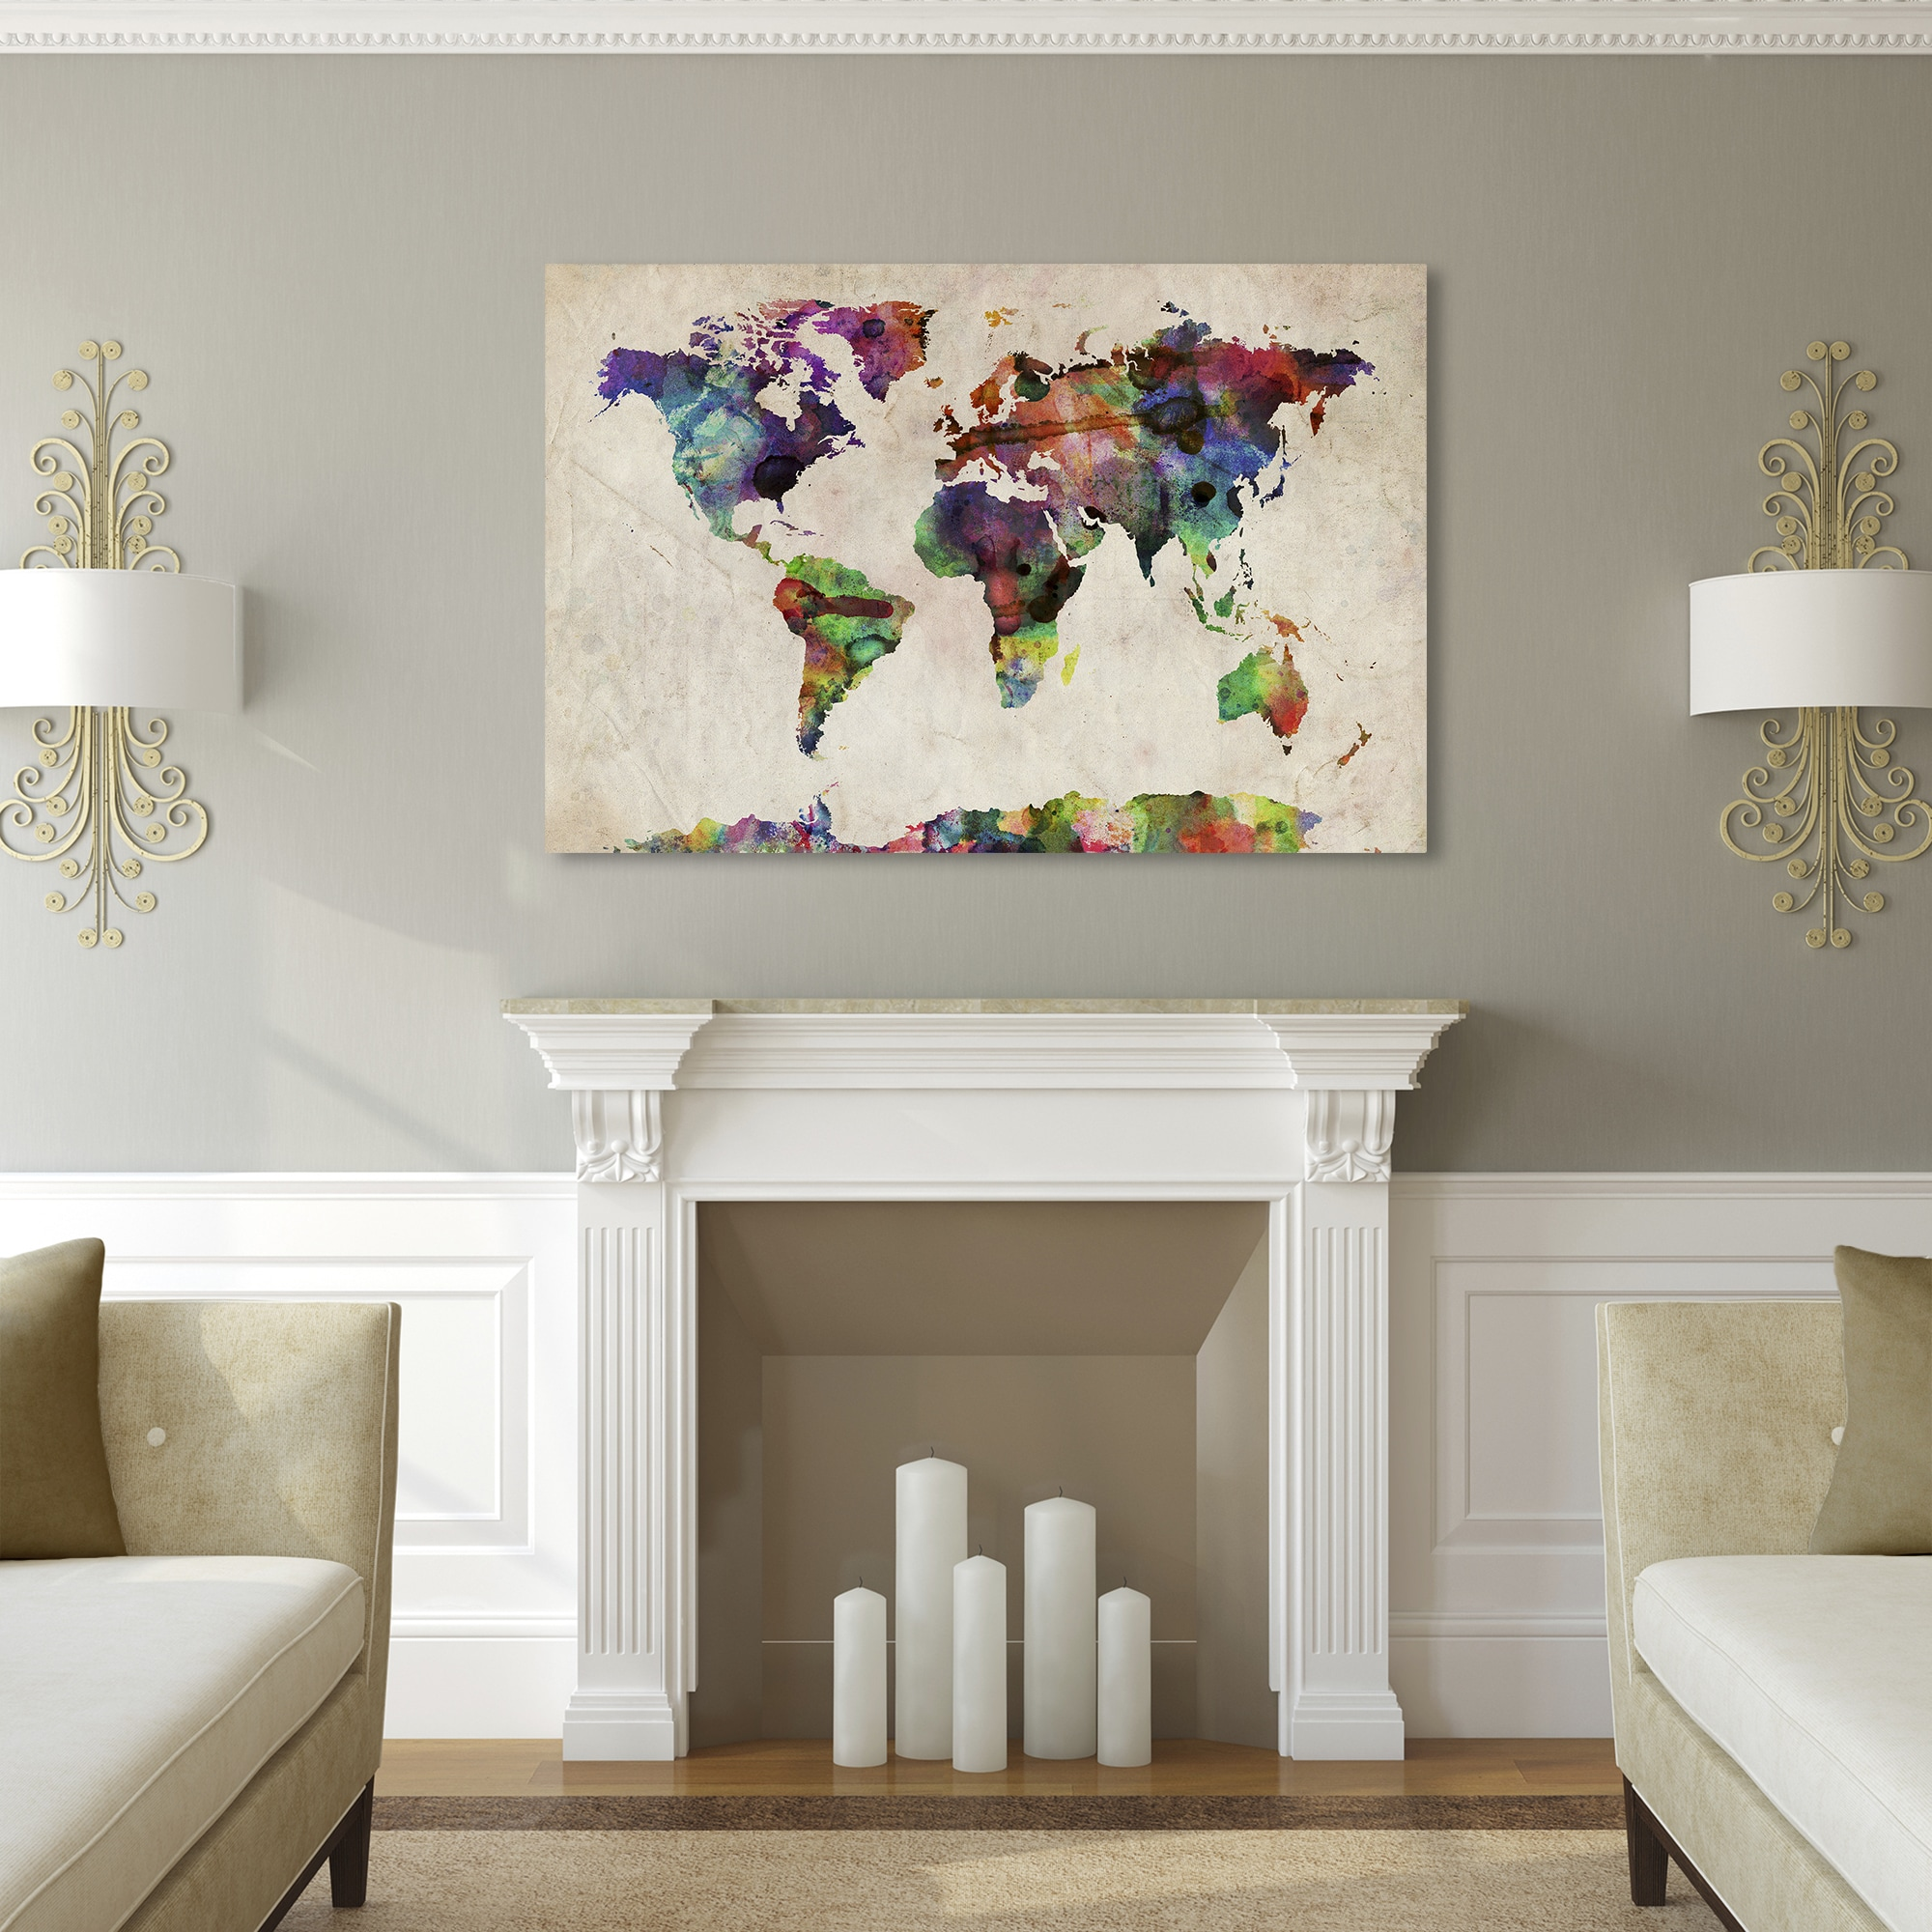 Shop michael tompsett urban watercolor world map canvas art free shop michael tompsett urban watercolor world map canvas art free shipping on orders over 45 overstock 7569570 gumiabroncs Image collections